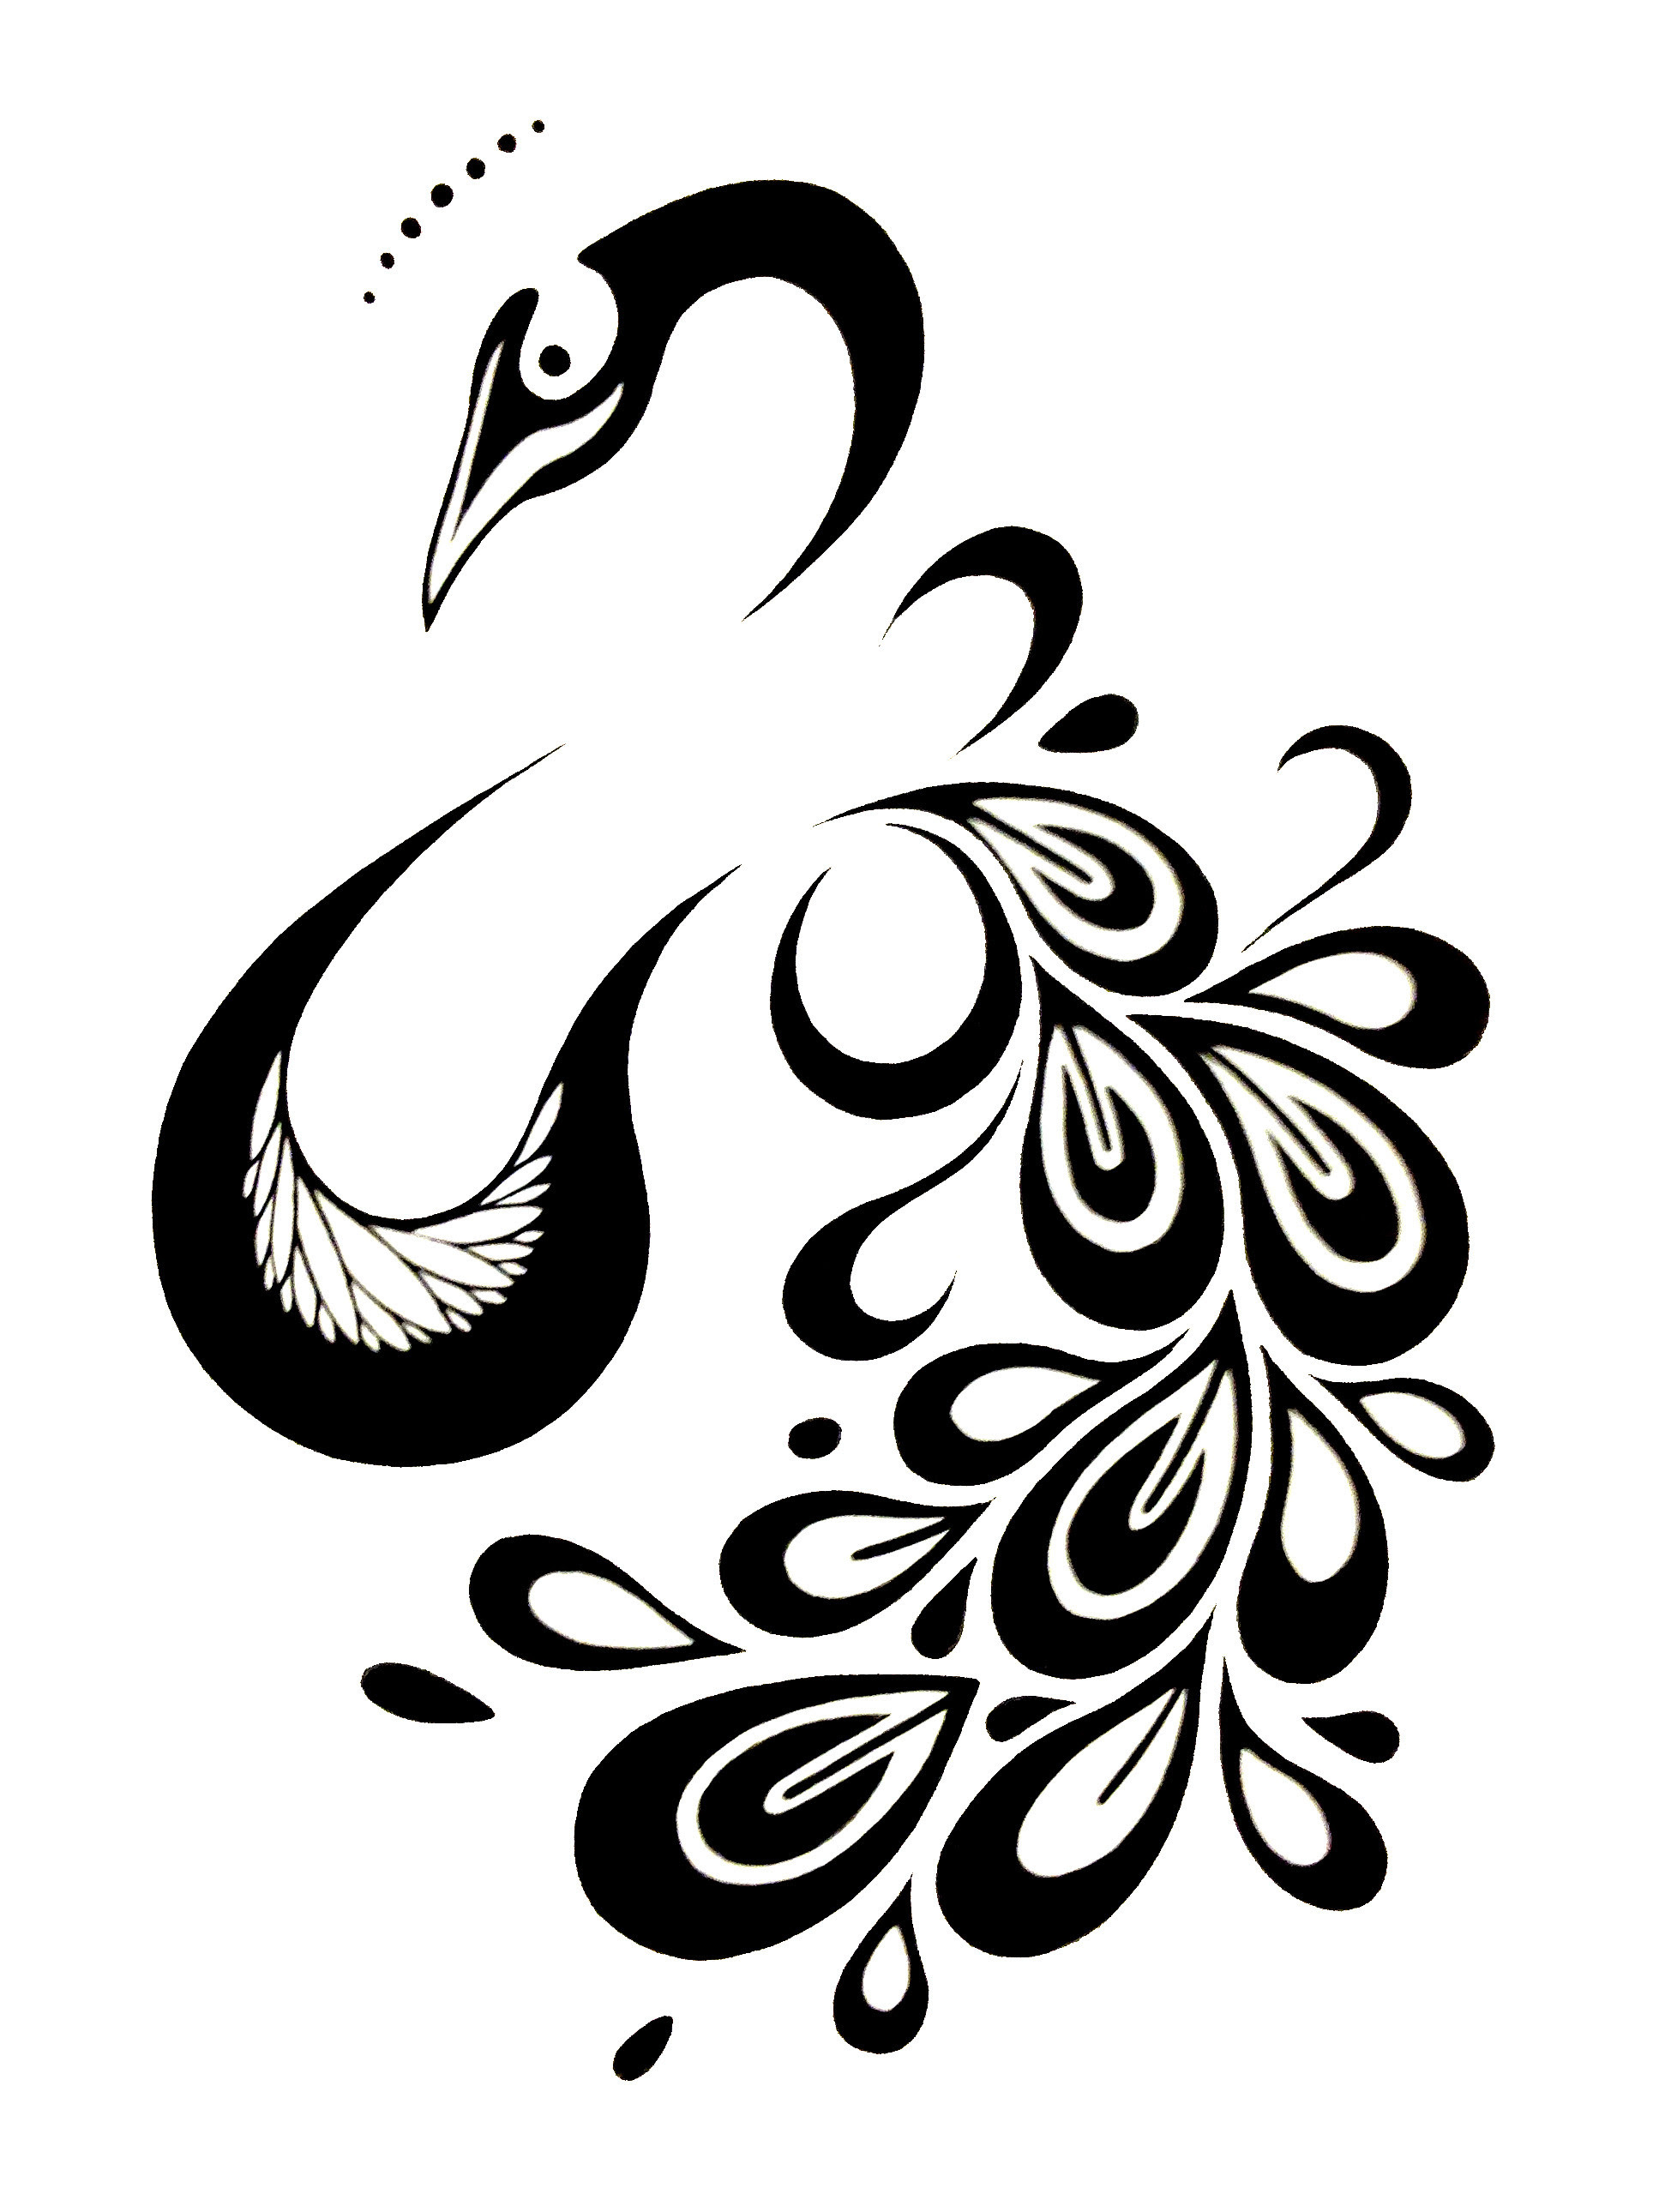 Free Peacock Design Black And White Download Free Clip Art Free